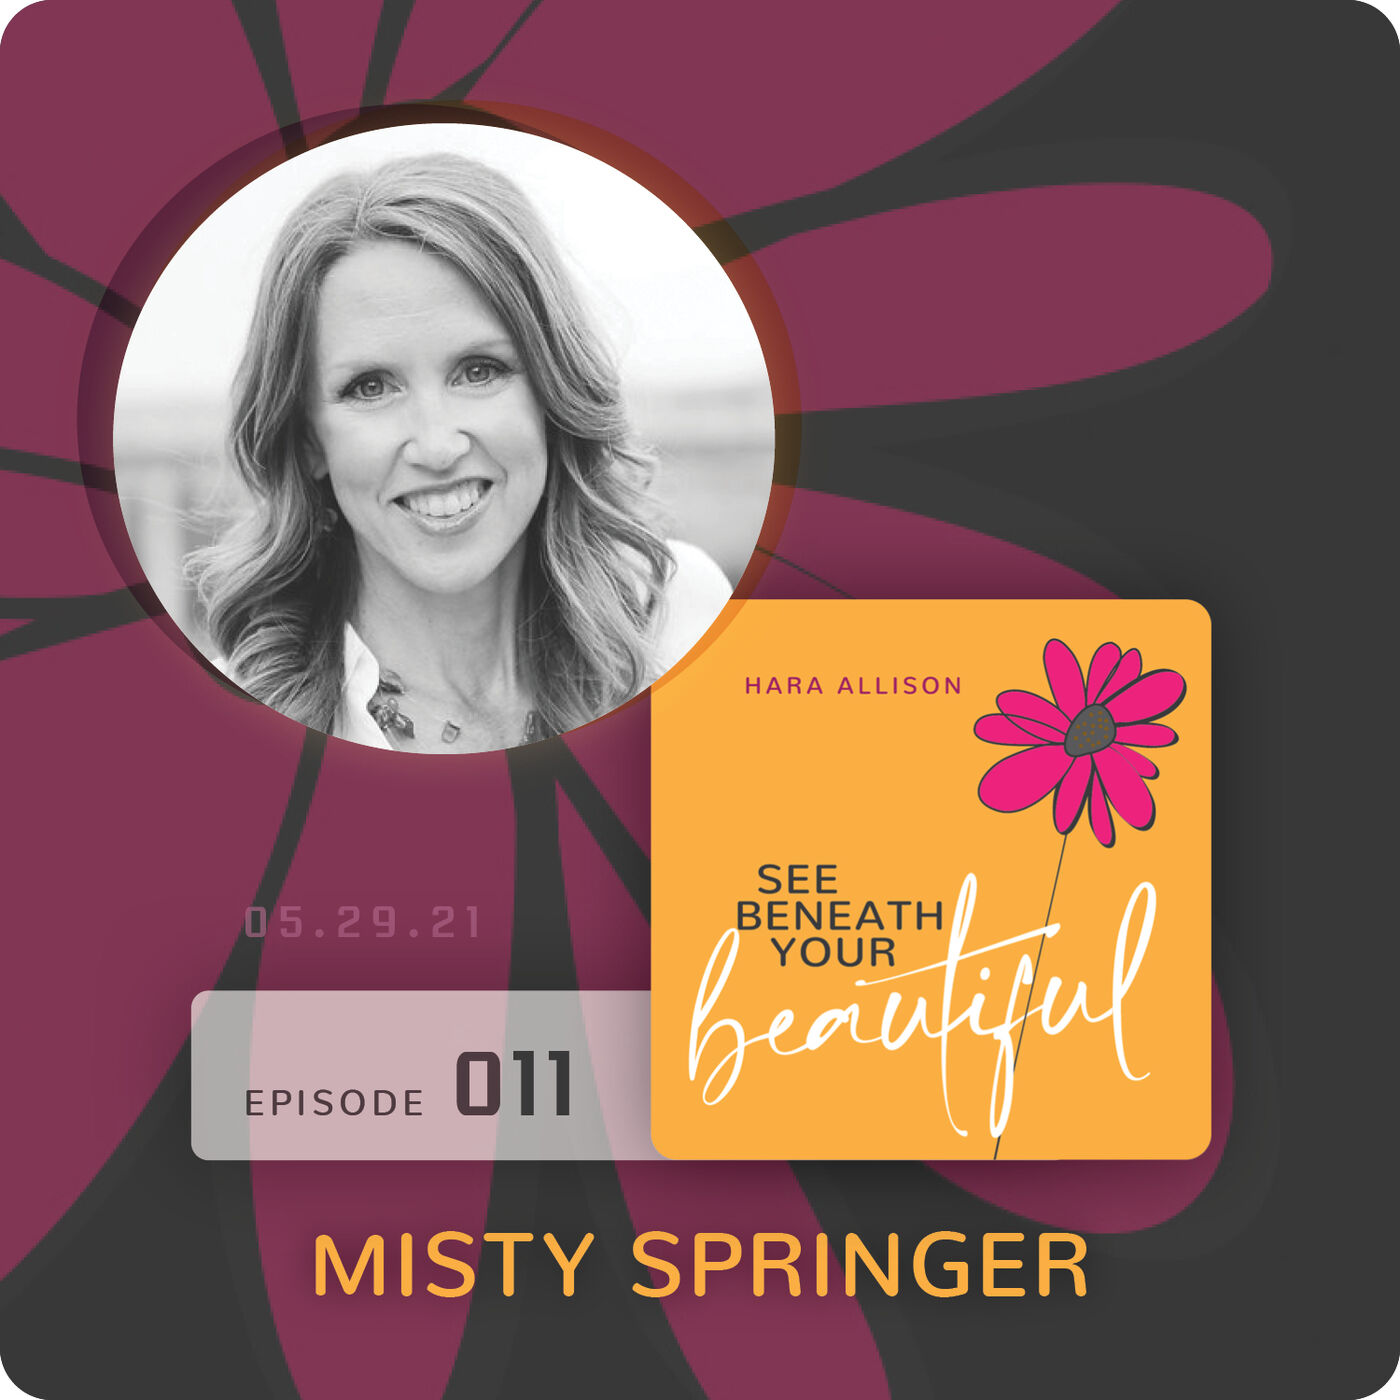 011. Misty Springer dsicusses helping women step into their divine purpose and potential, finding enlightenment at the bottom of a chocolate chip cookie bag, running into invisible brick walls, creating the energy of yes, and tuning into the first voice